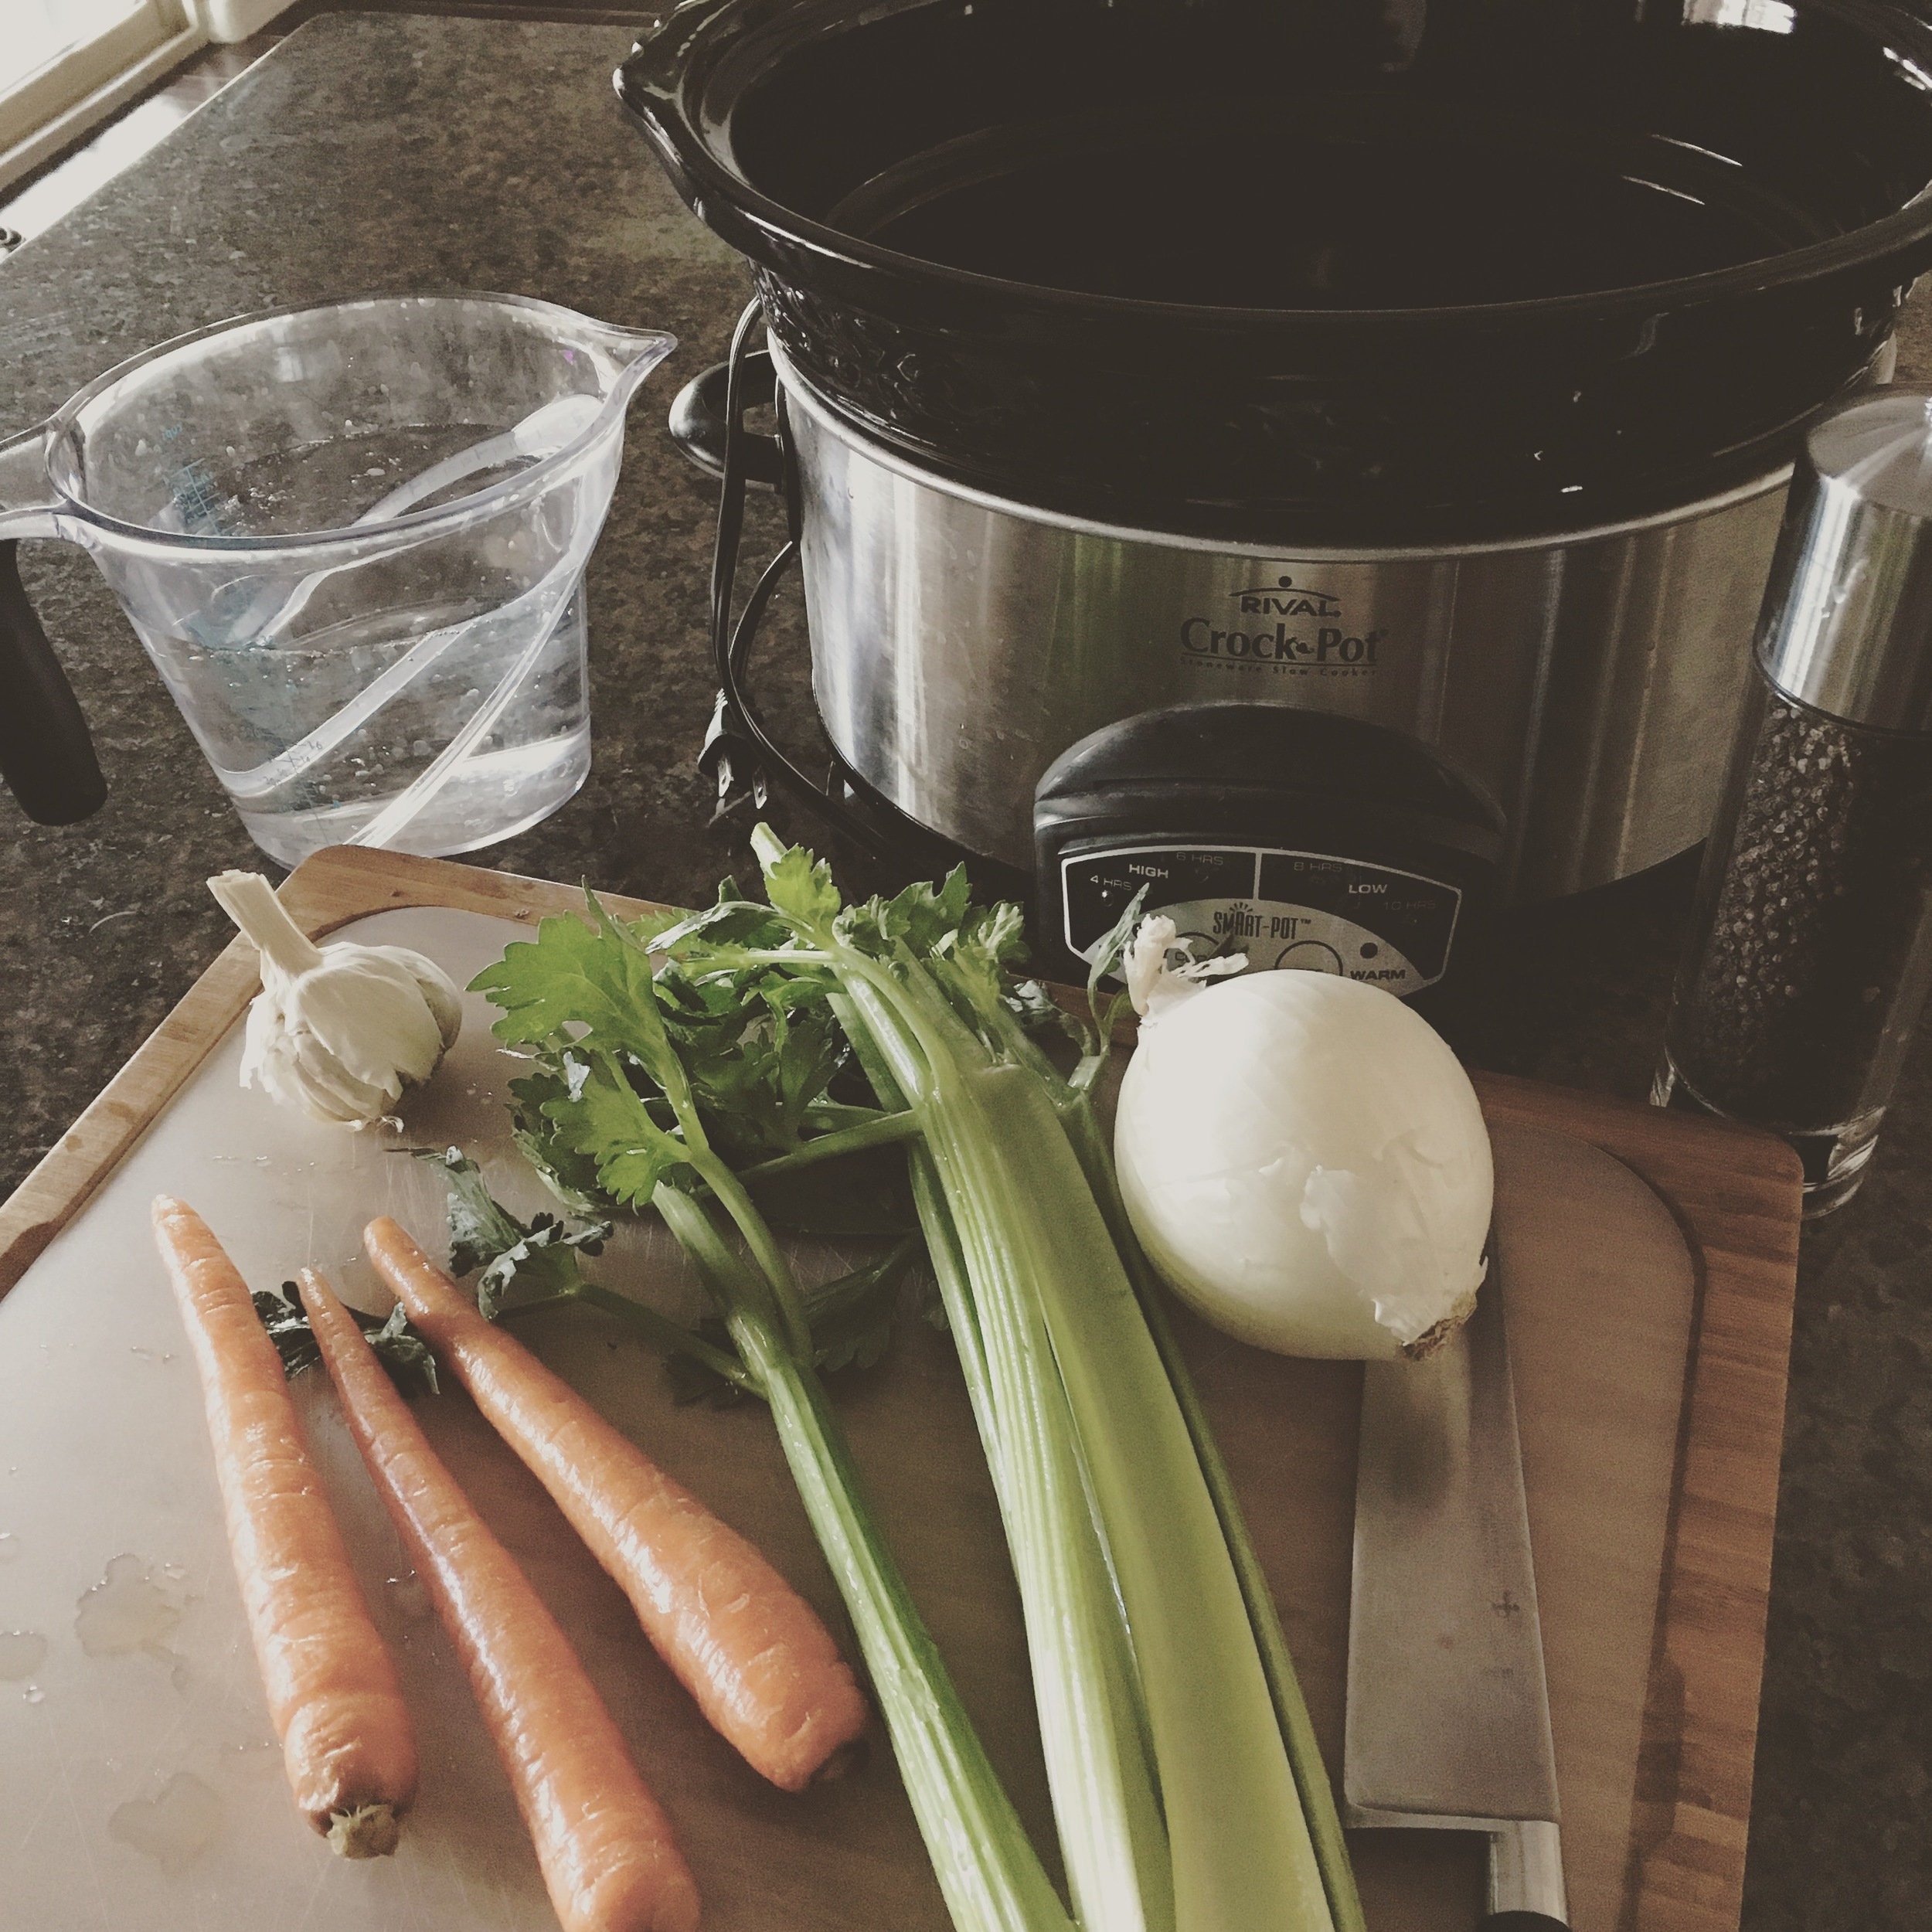 Getting prepped for a batch of bone broth.